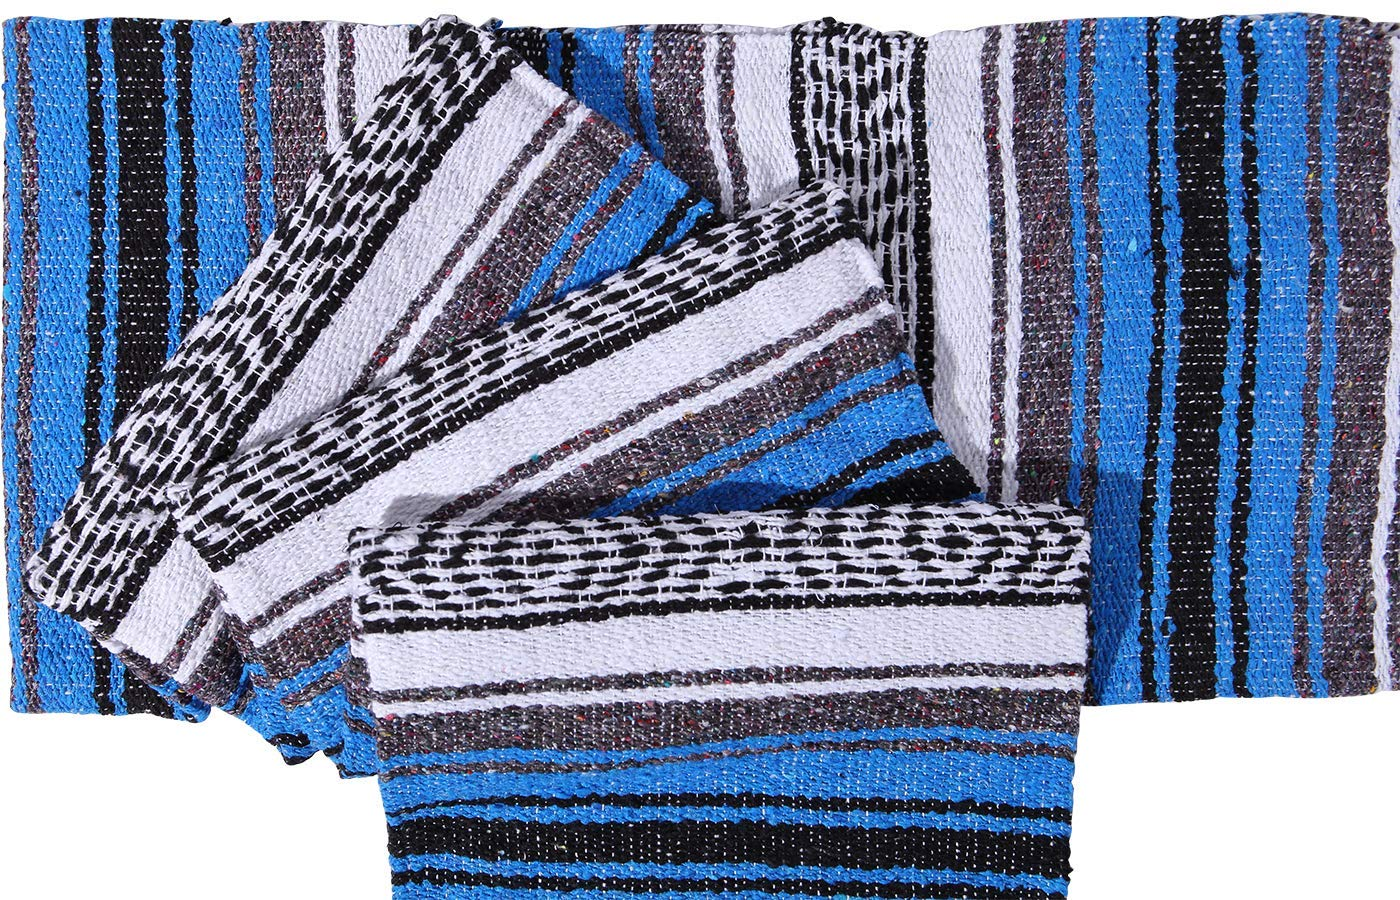 El Paso Designs Genuine Mexican Falsa Blanket - Yoga Studio Blanket, Colorful, Soft Woven Serape Imported from Mexico (Blue) by El Paso Designs (Image #4)